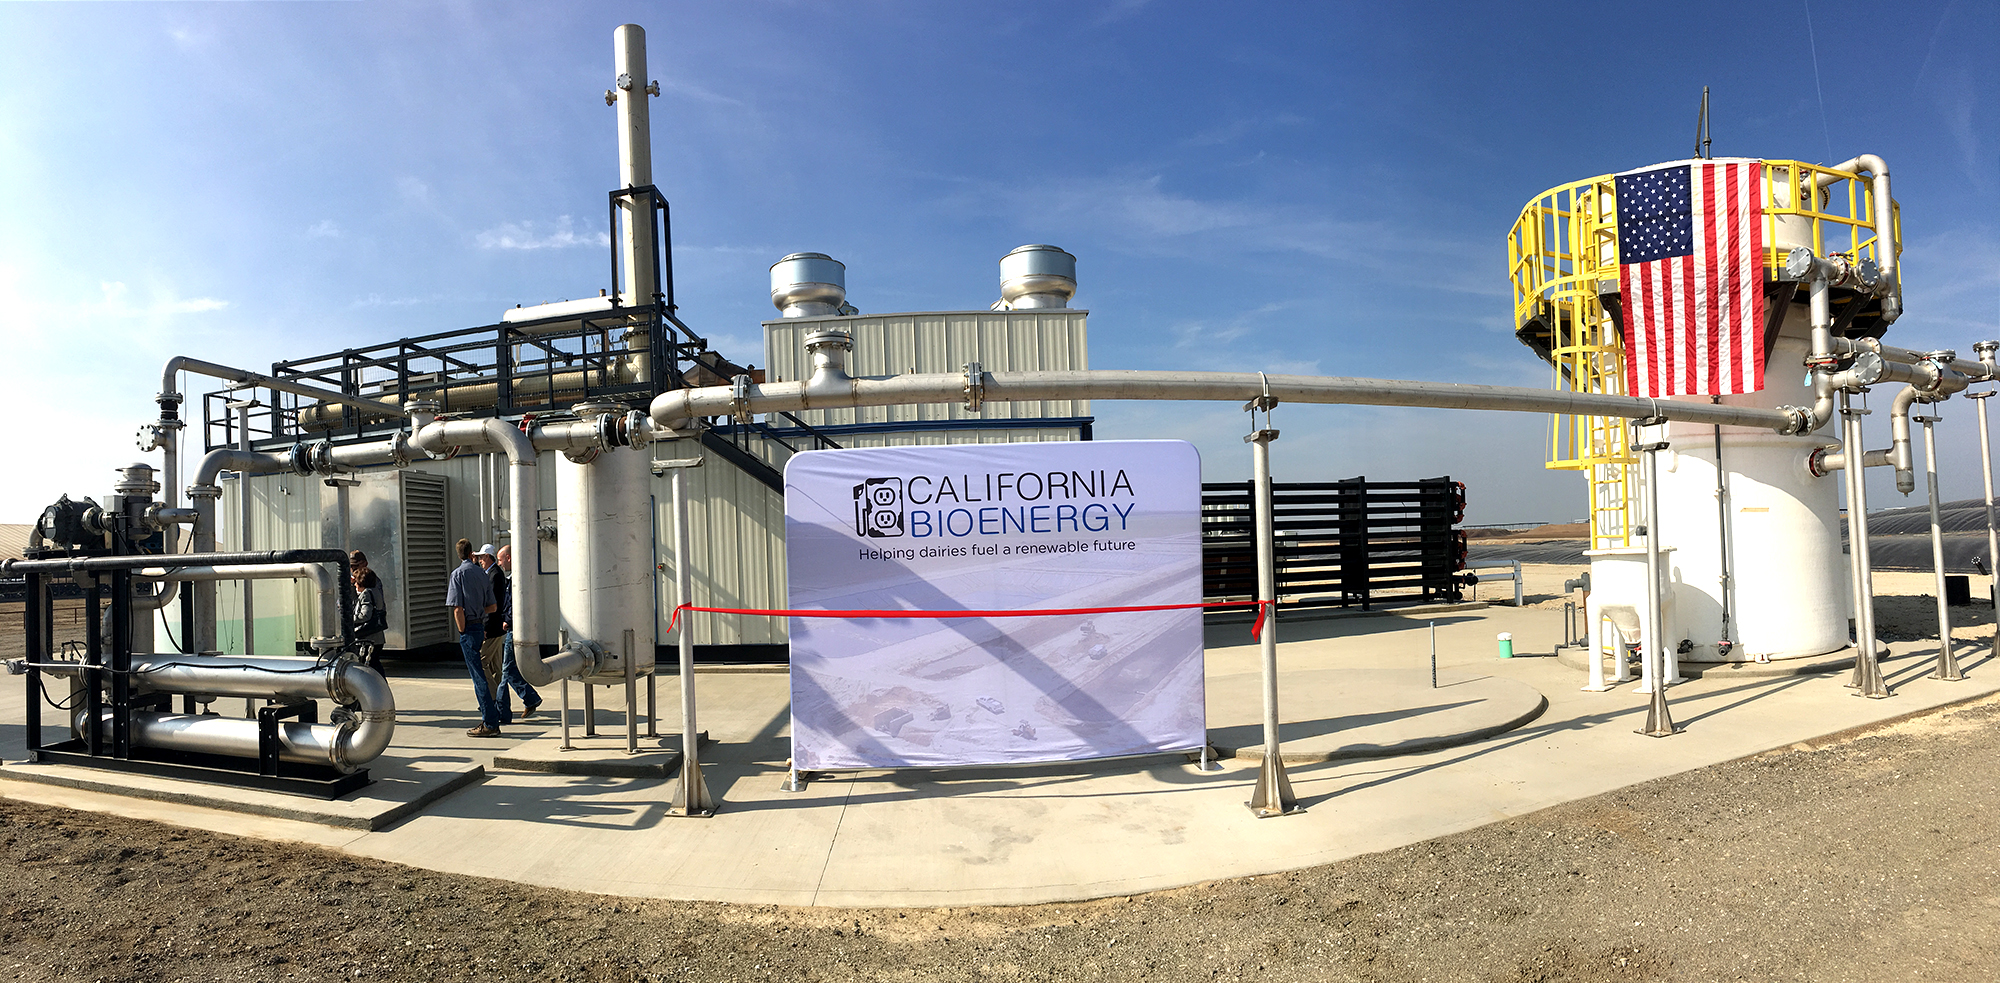 An industrial bioenergy facility in the desert